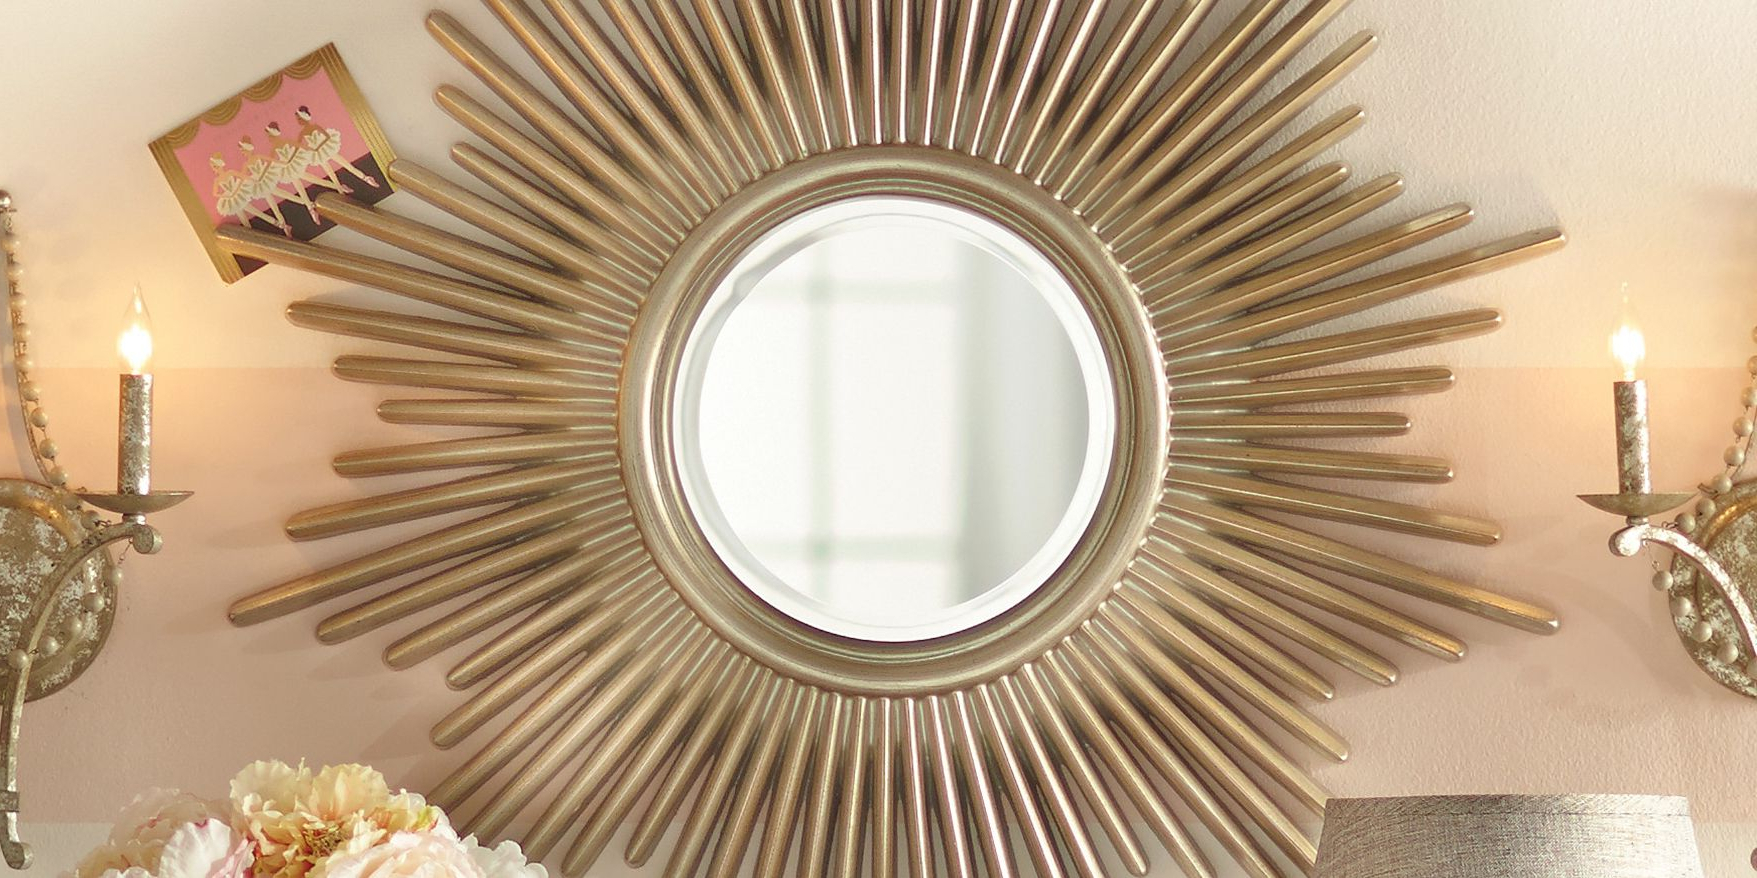 12 Best Sunburst Mirrors In 2018 – Decorative Small And Large Throughout Famous Soleil Wall Mirrors (View 1 of 20)